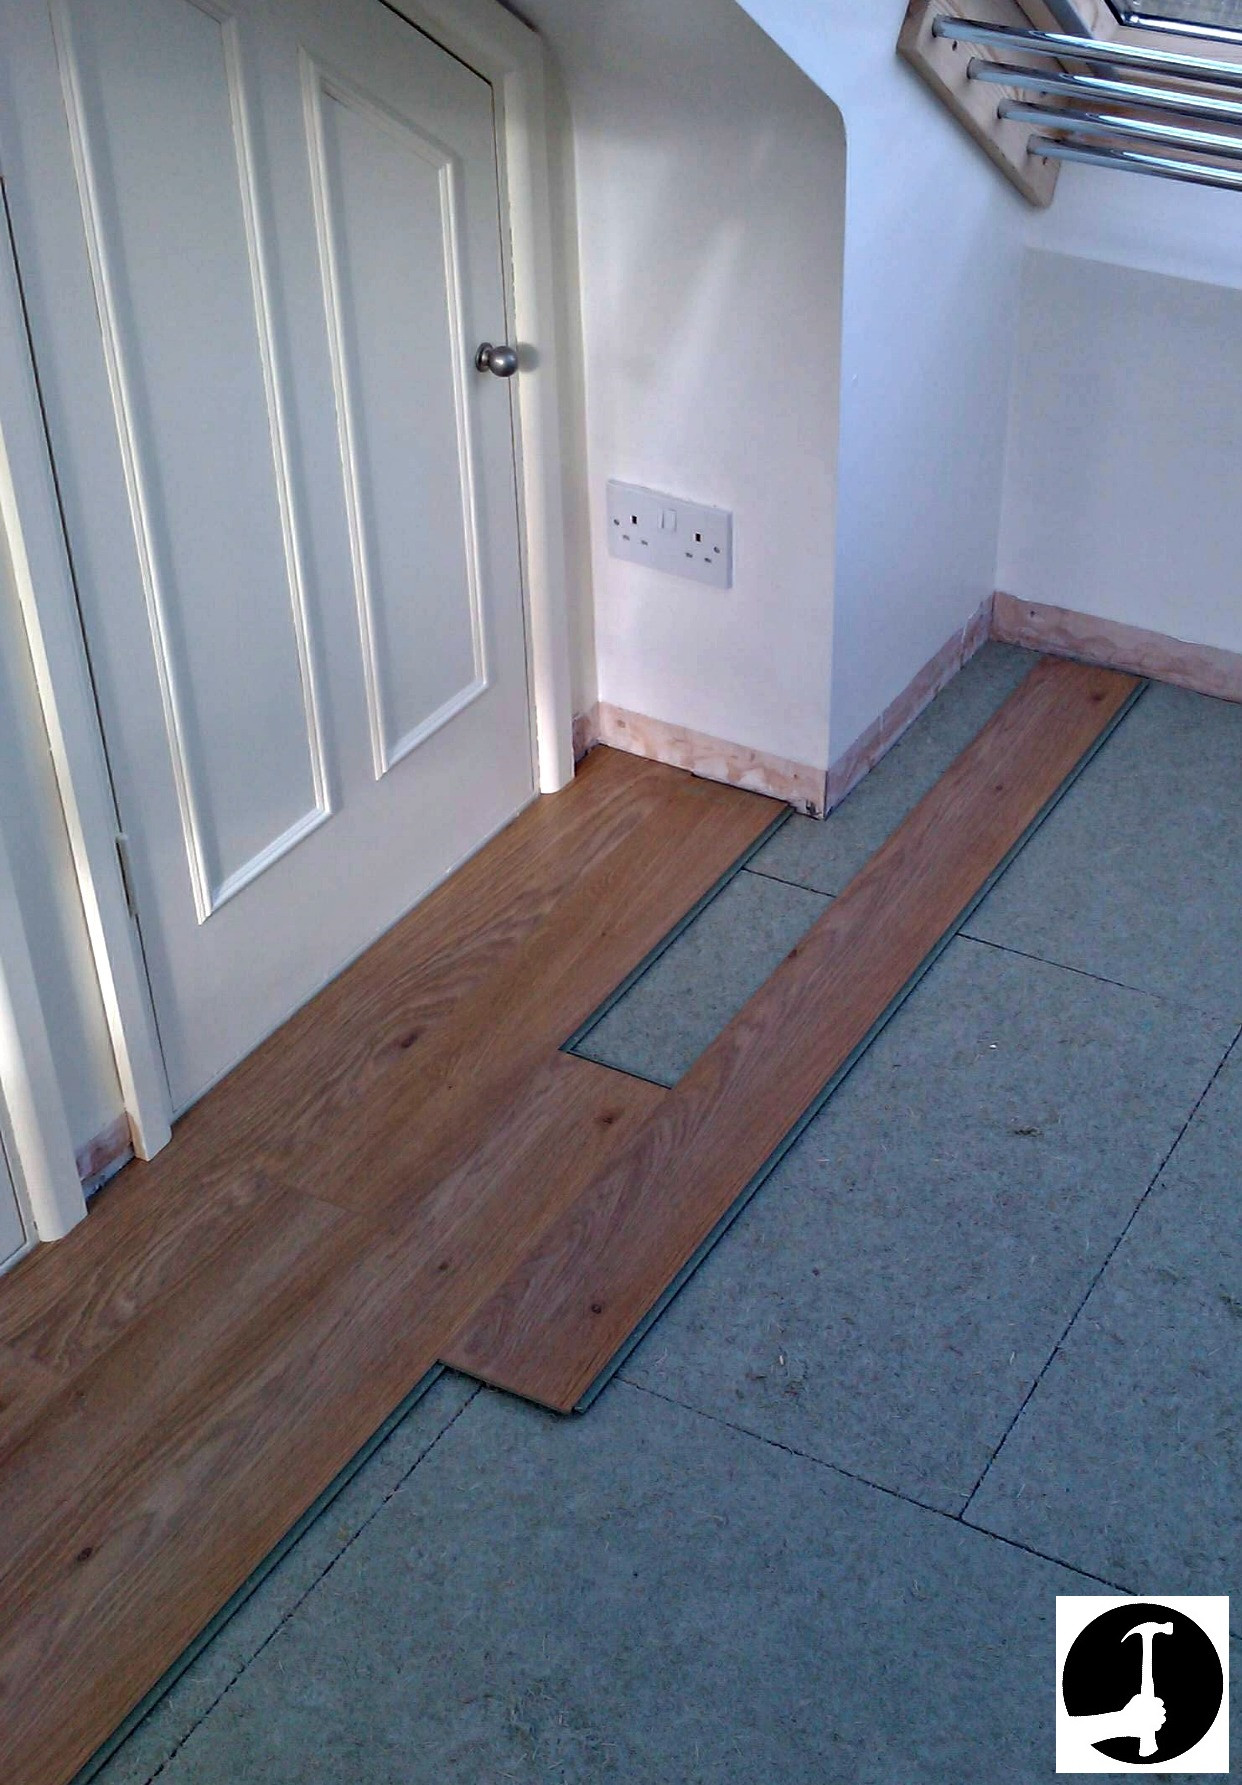 hardwood floor seam filler of how to install laminate flooring with ease glued glue less systems for setting out laminate flooring